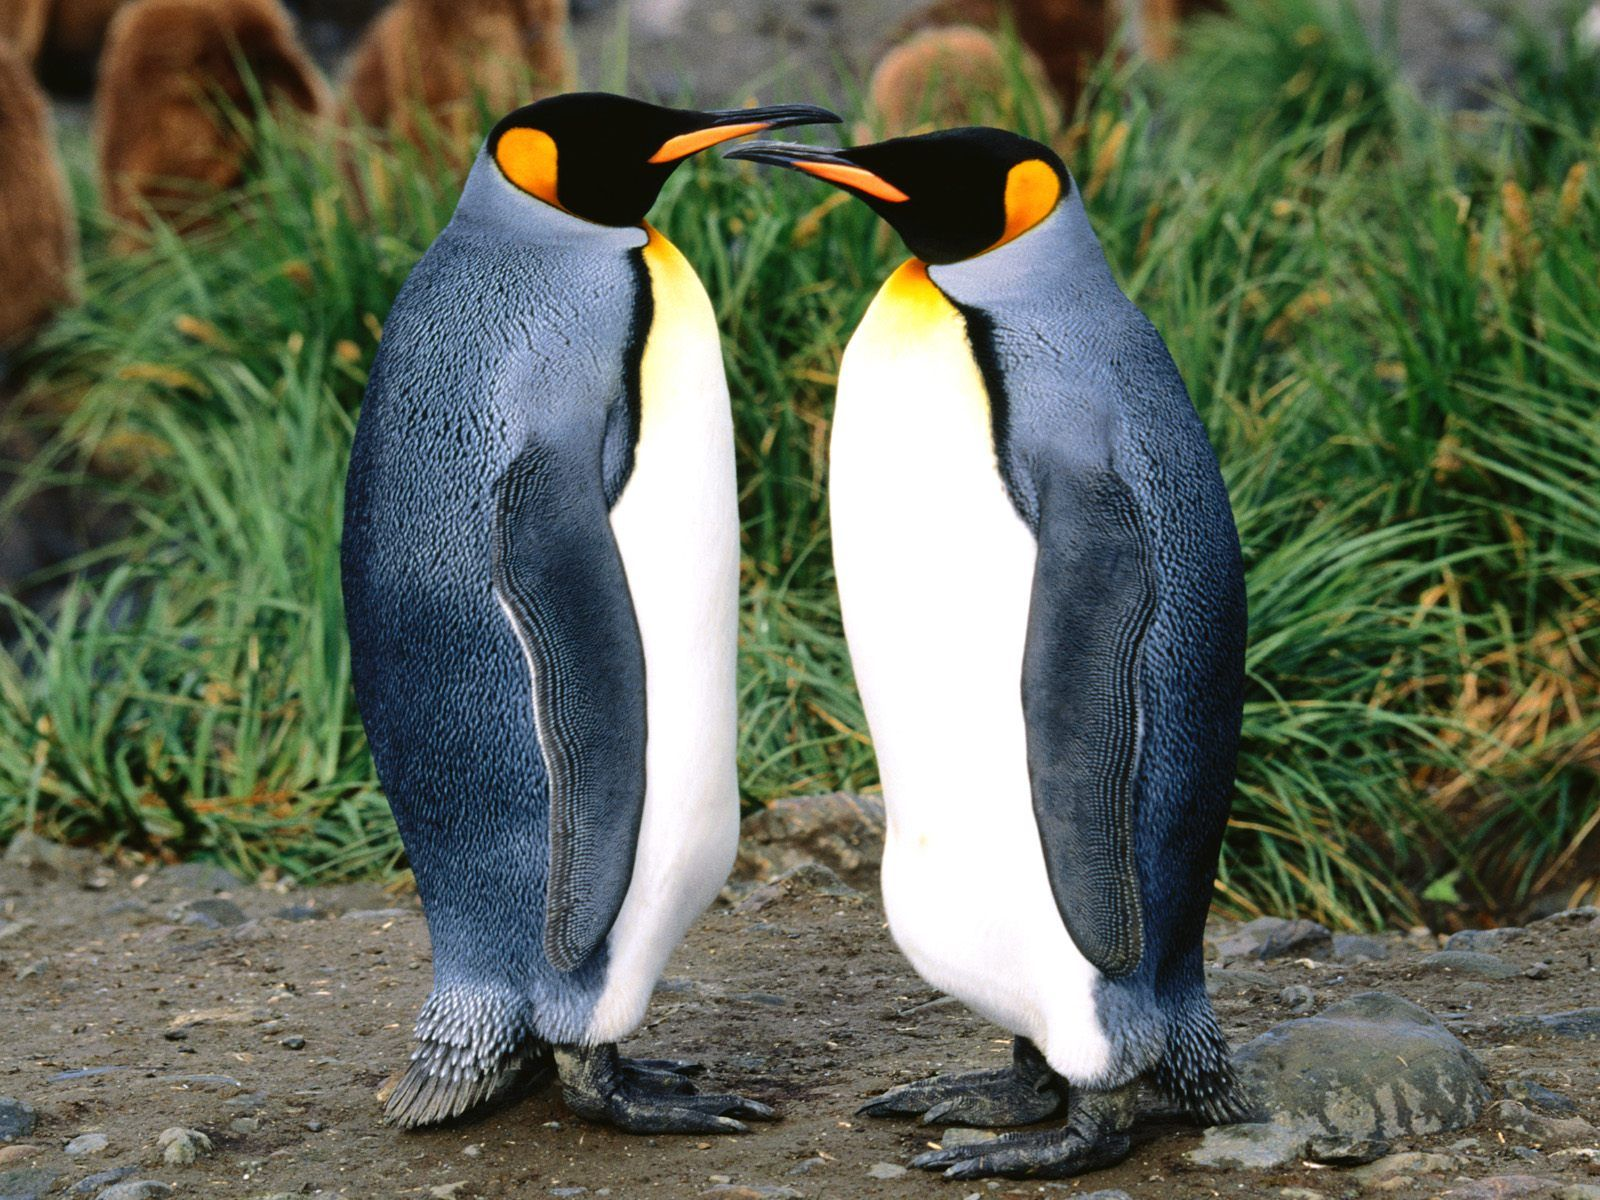 images of all animals Getting All the Gossip King Penguin 1600x1200